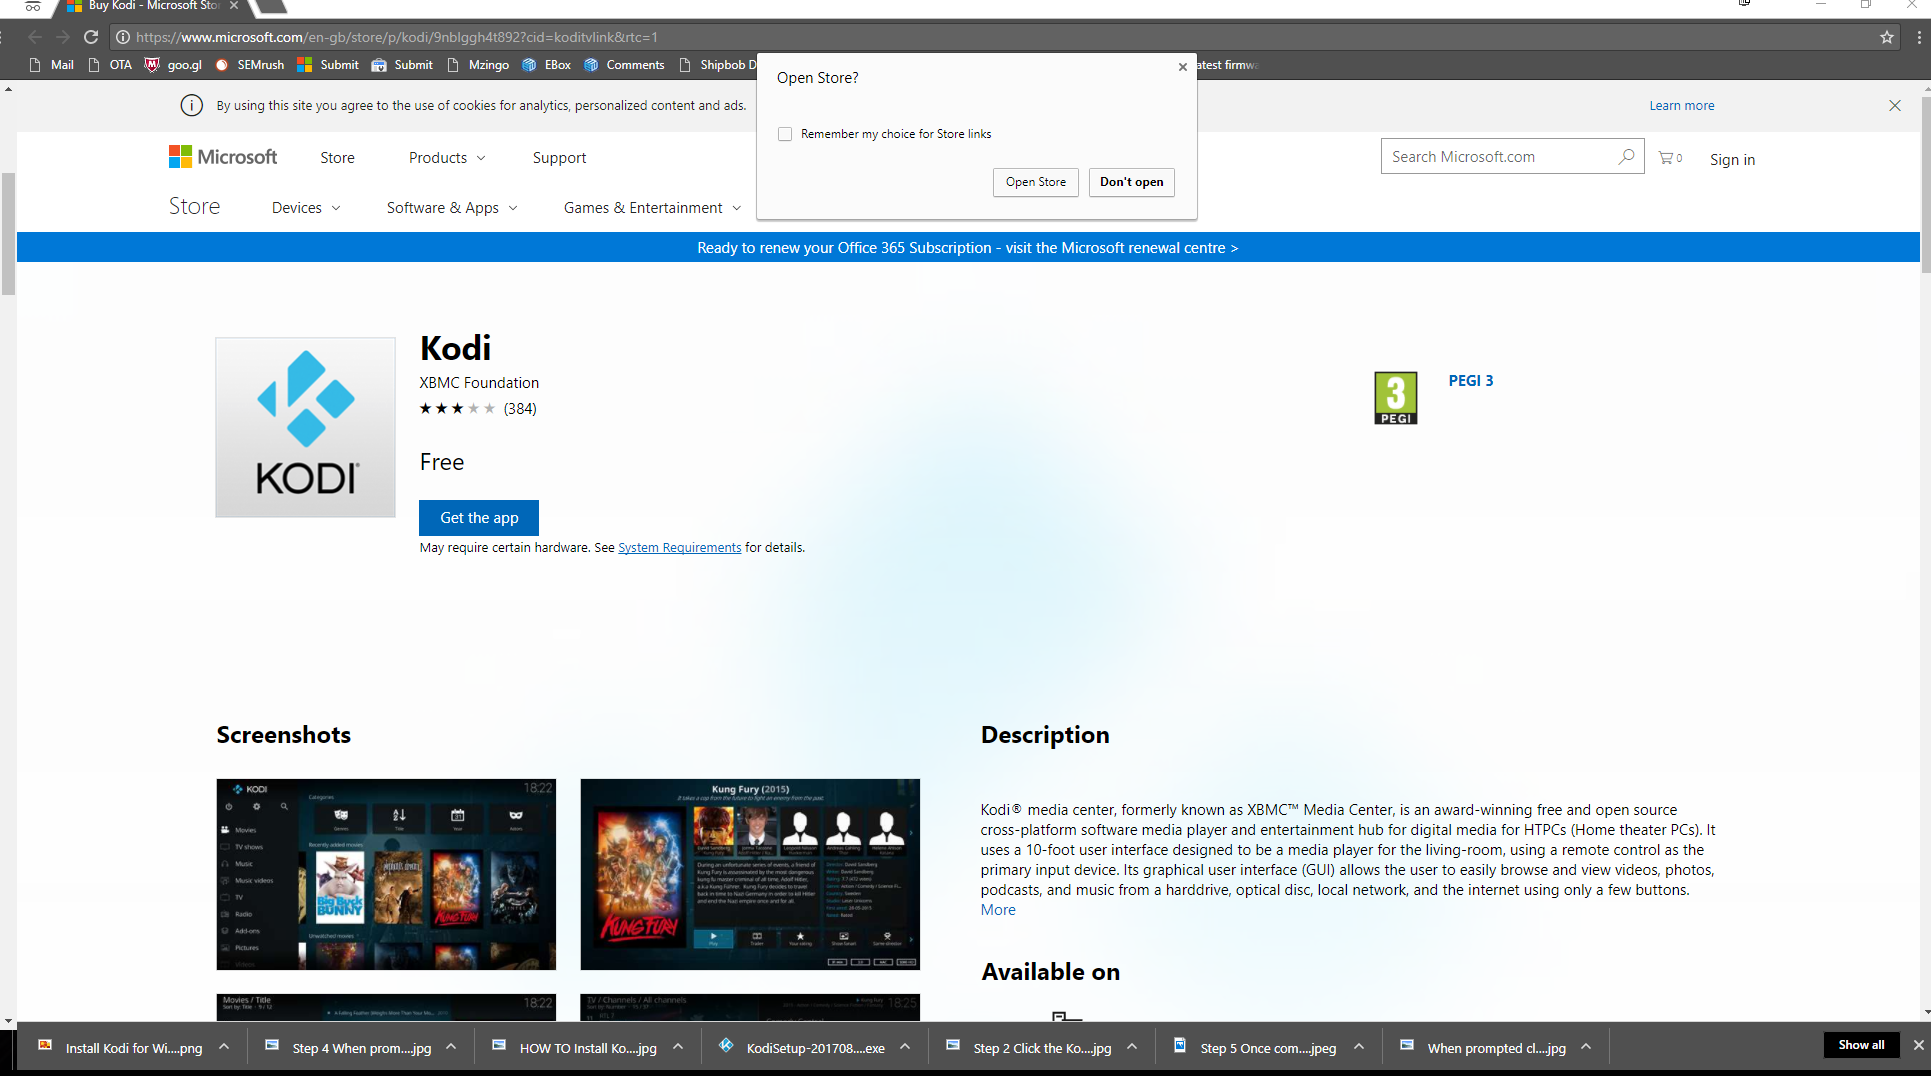 step 1 Click here to Download Kodi from the Windows Store